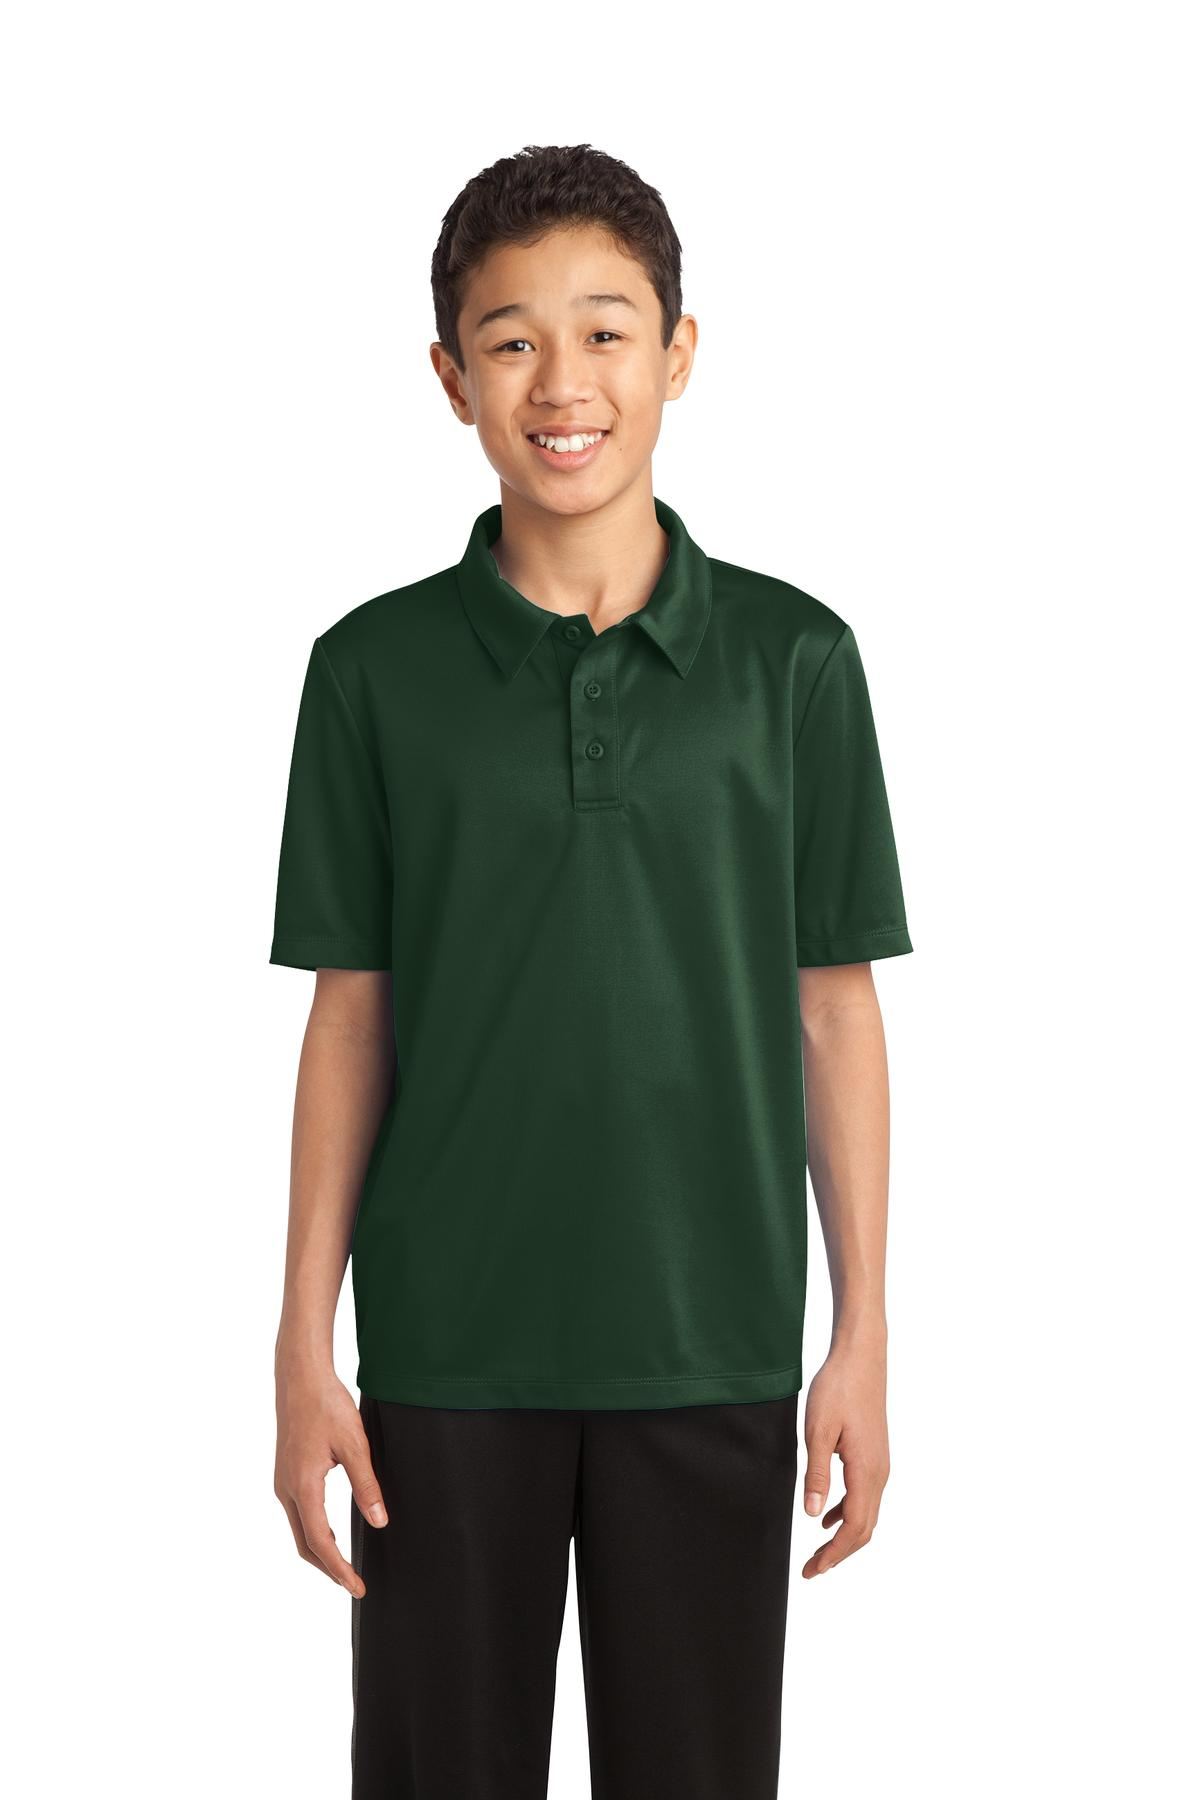 Port Authority ®  Youth Silk Touch™ Performance Polo. Y540 - Dark Green